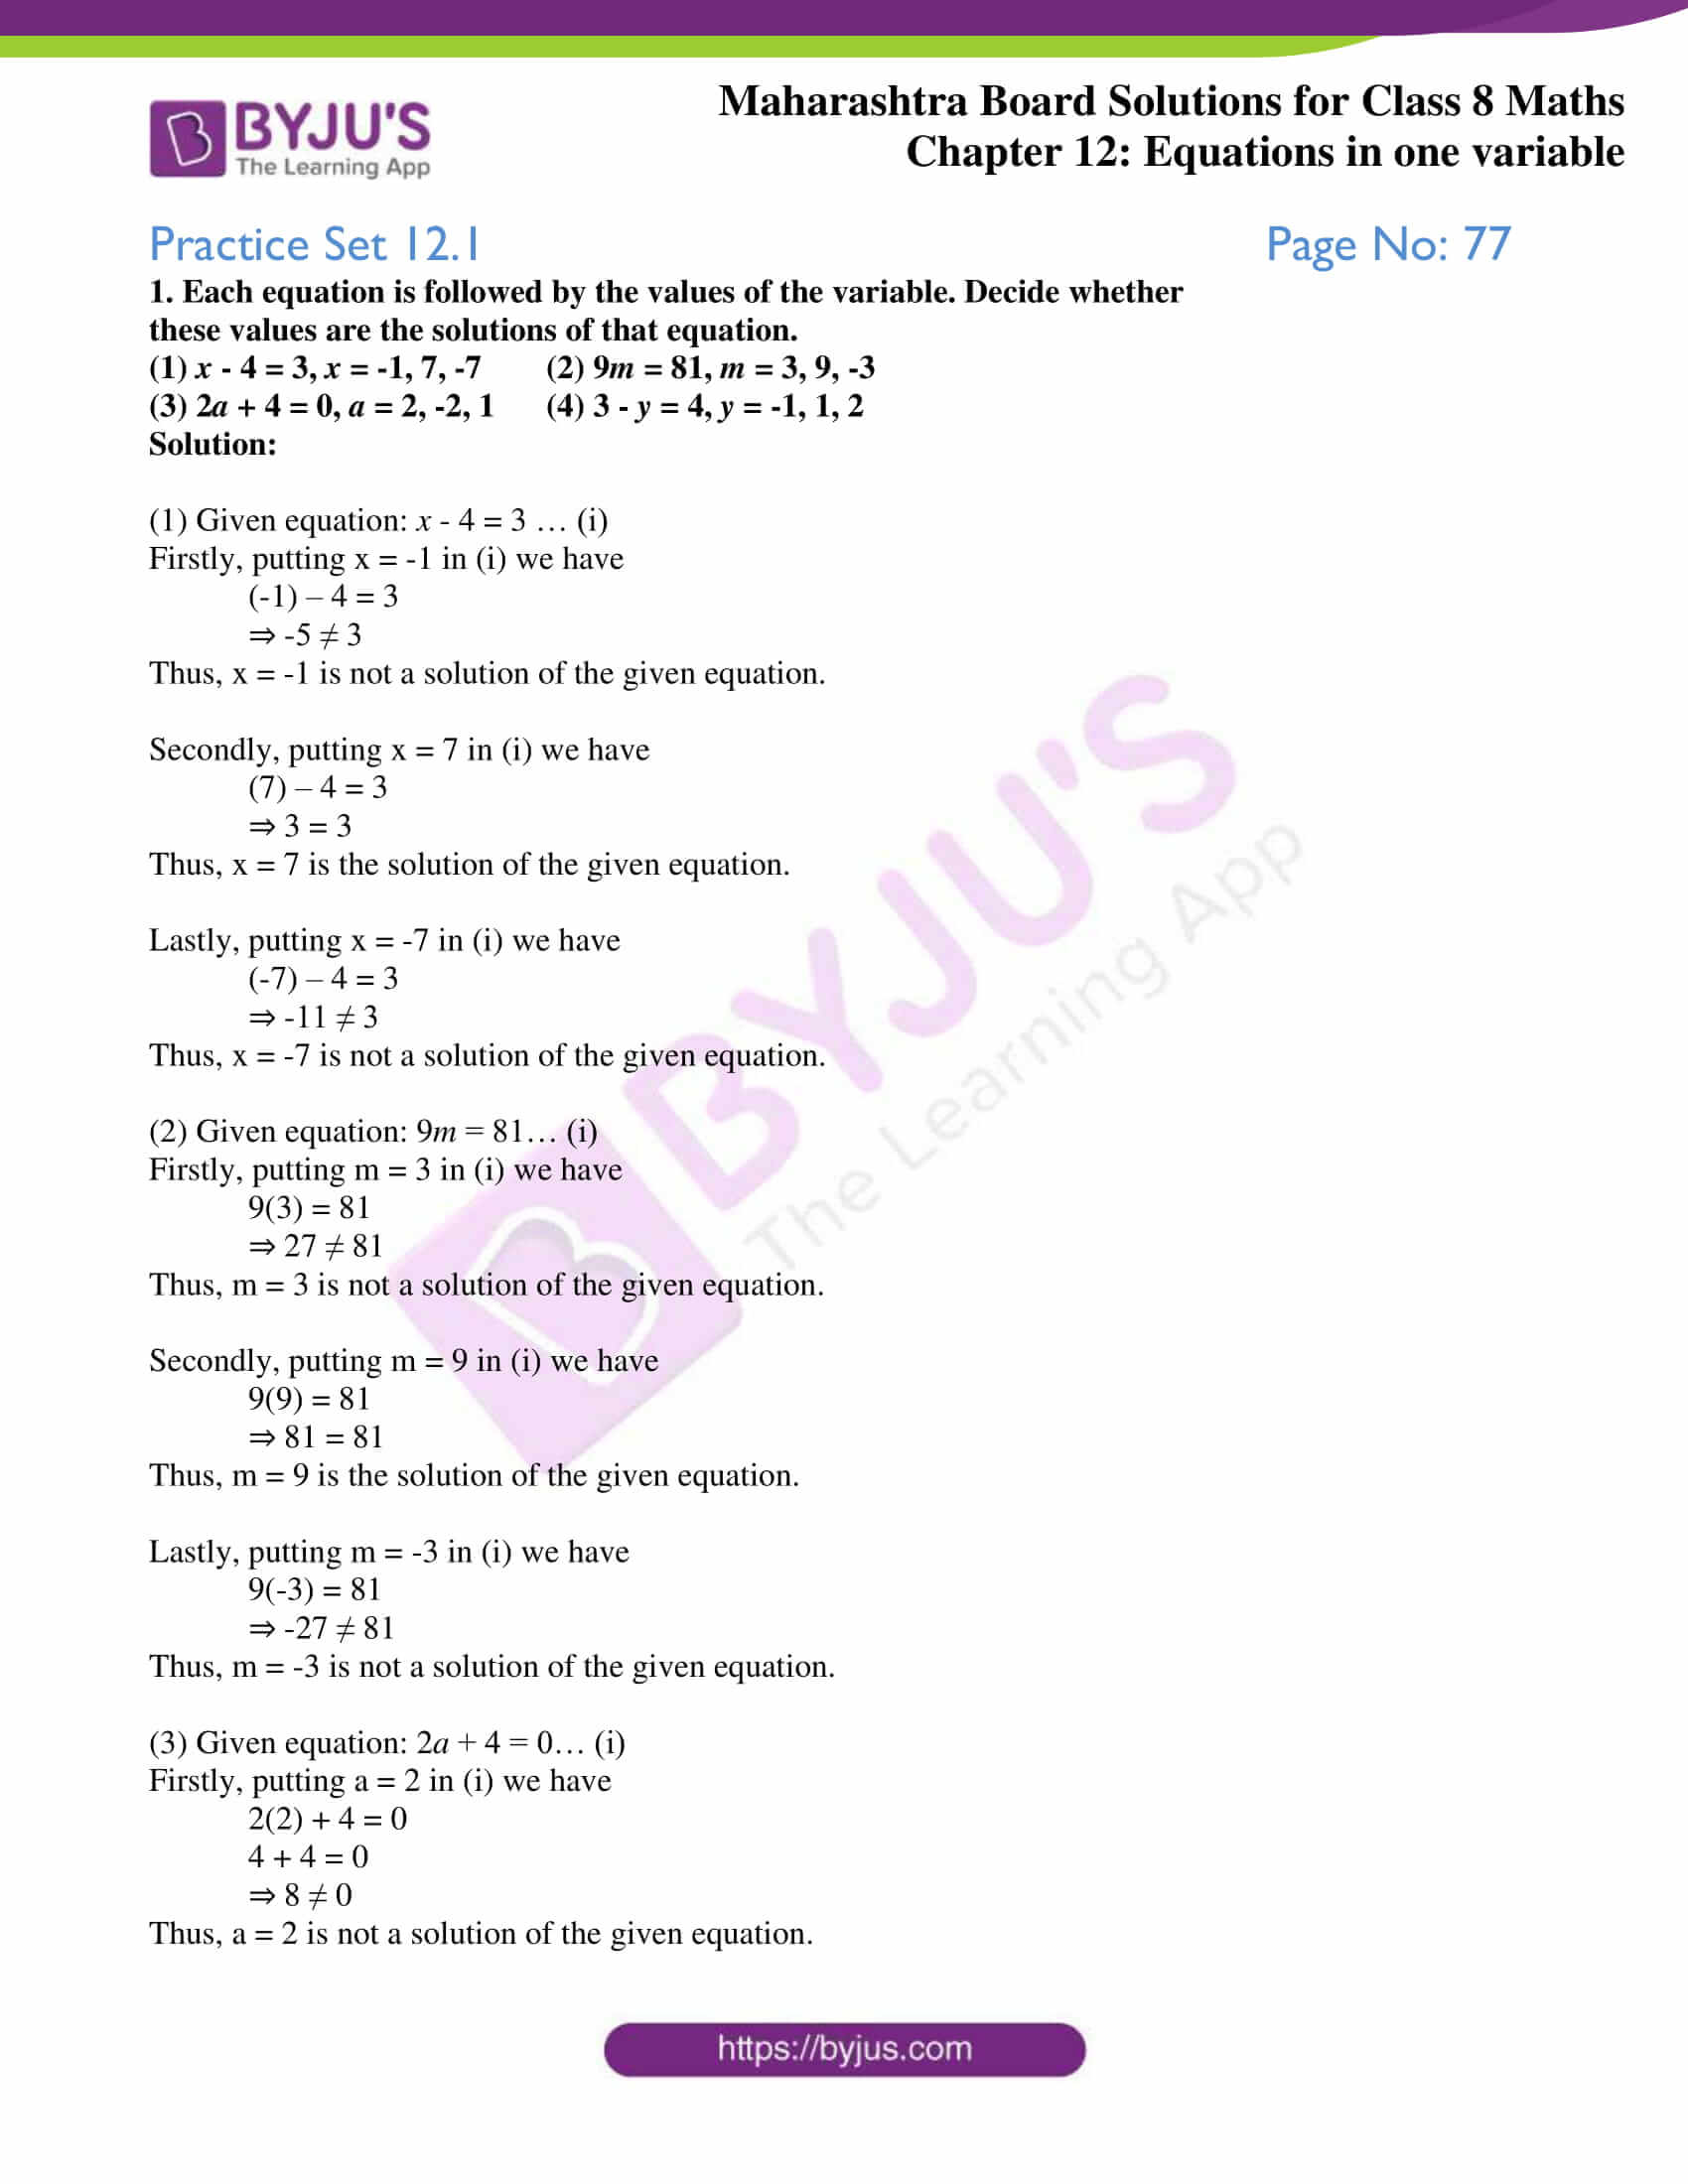 msbshse sol for class 8 maths chapter 12 01